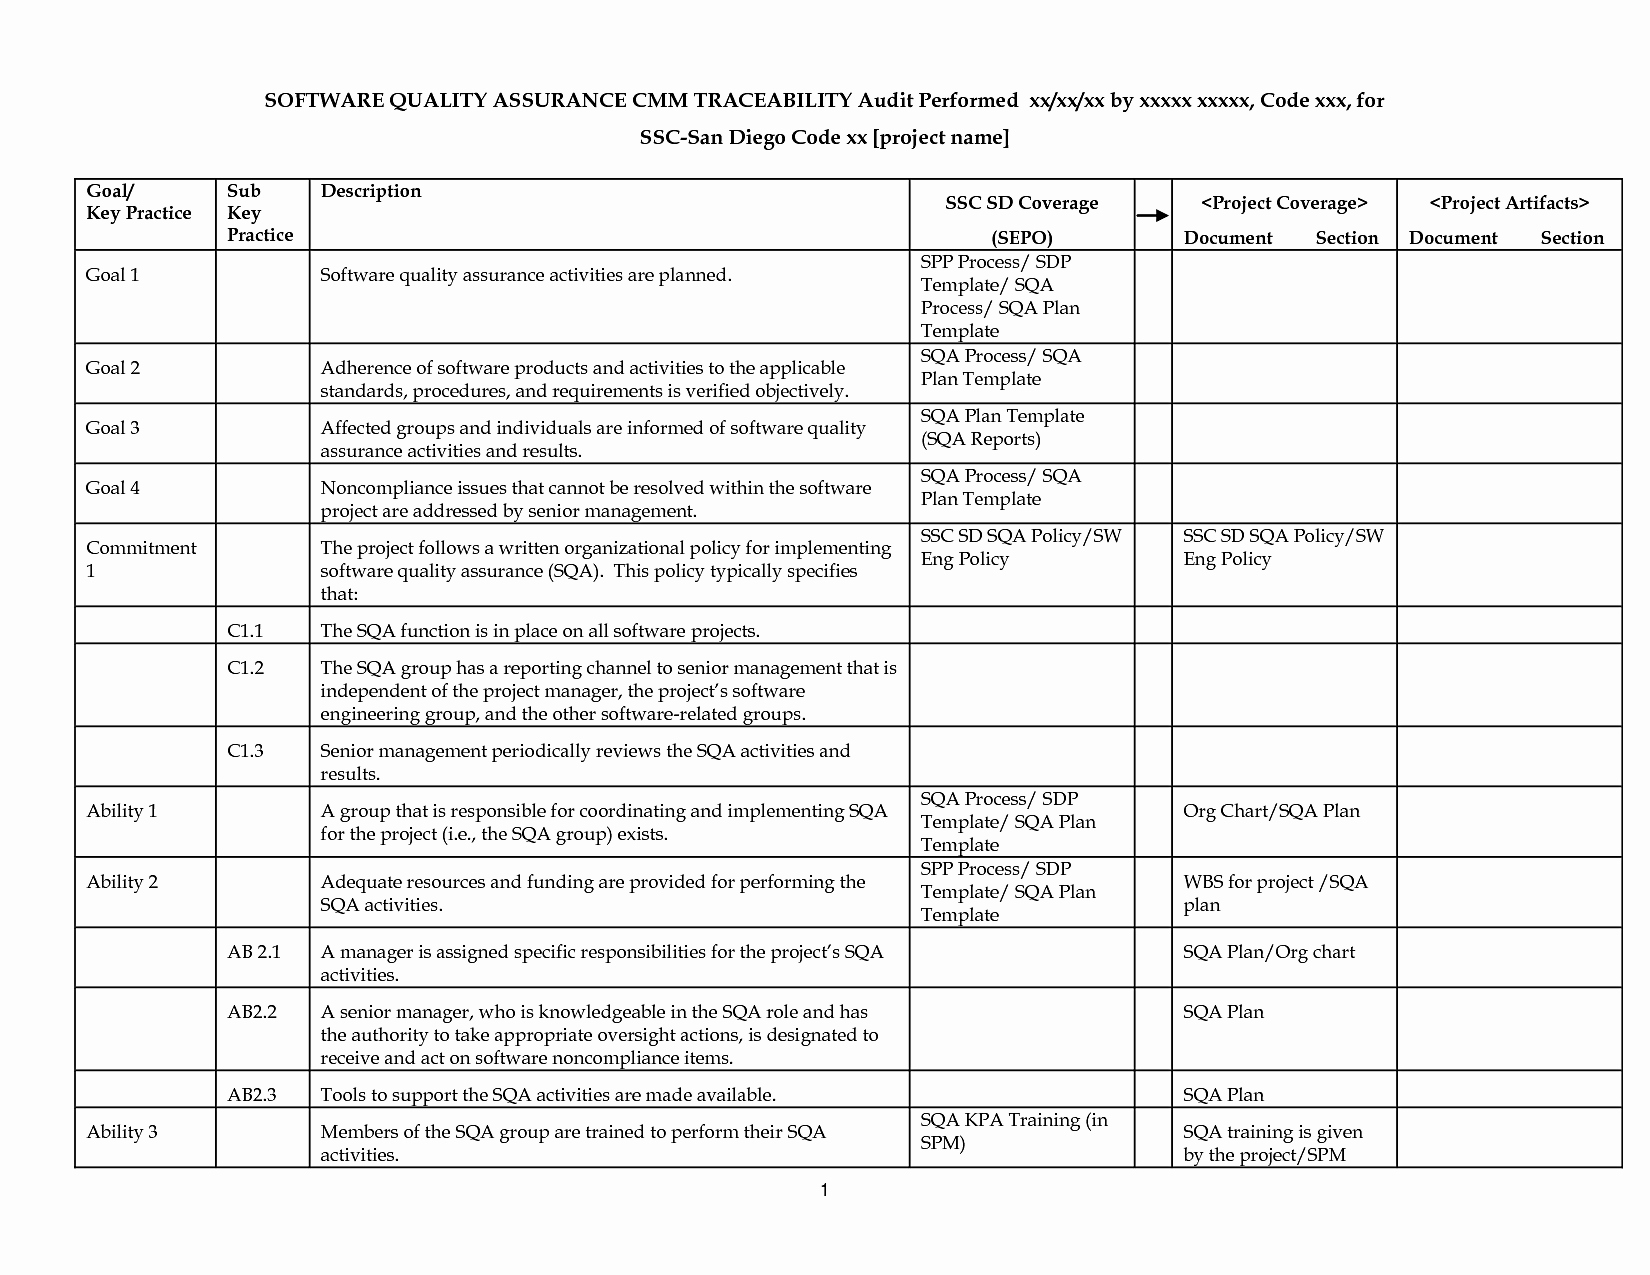 Iso 27001 2013 Risk Assessment Spreadsheet With Isodit Checklist Xls Beautiful The Statement Of Applicability